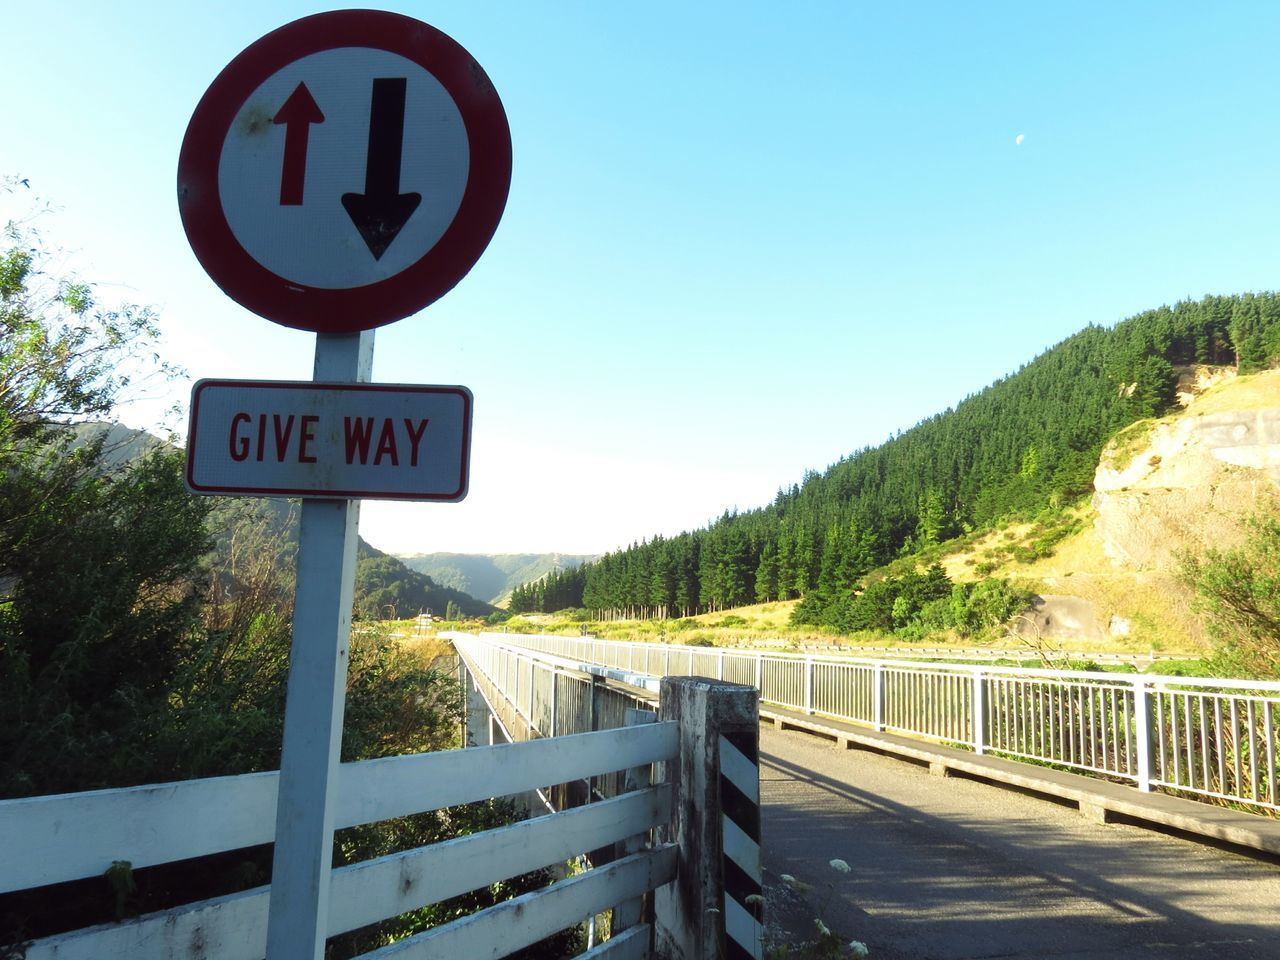 Blue Road Sign Sky Tree Outdoors No People Day Environment Tree Beauty In Nature Backyard Home New Zealand Fence Row Lined Up Miles Away Scenic Landscapes New Zealand Scenery Manawatugorge Ballance Bridge Sunlight Sunbeam Landscape